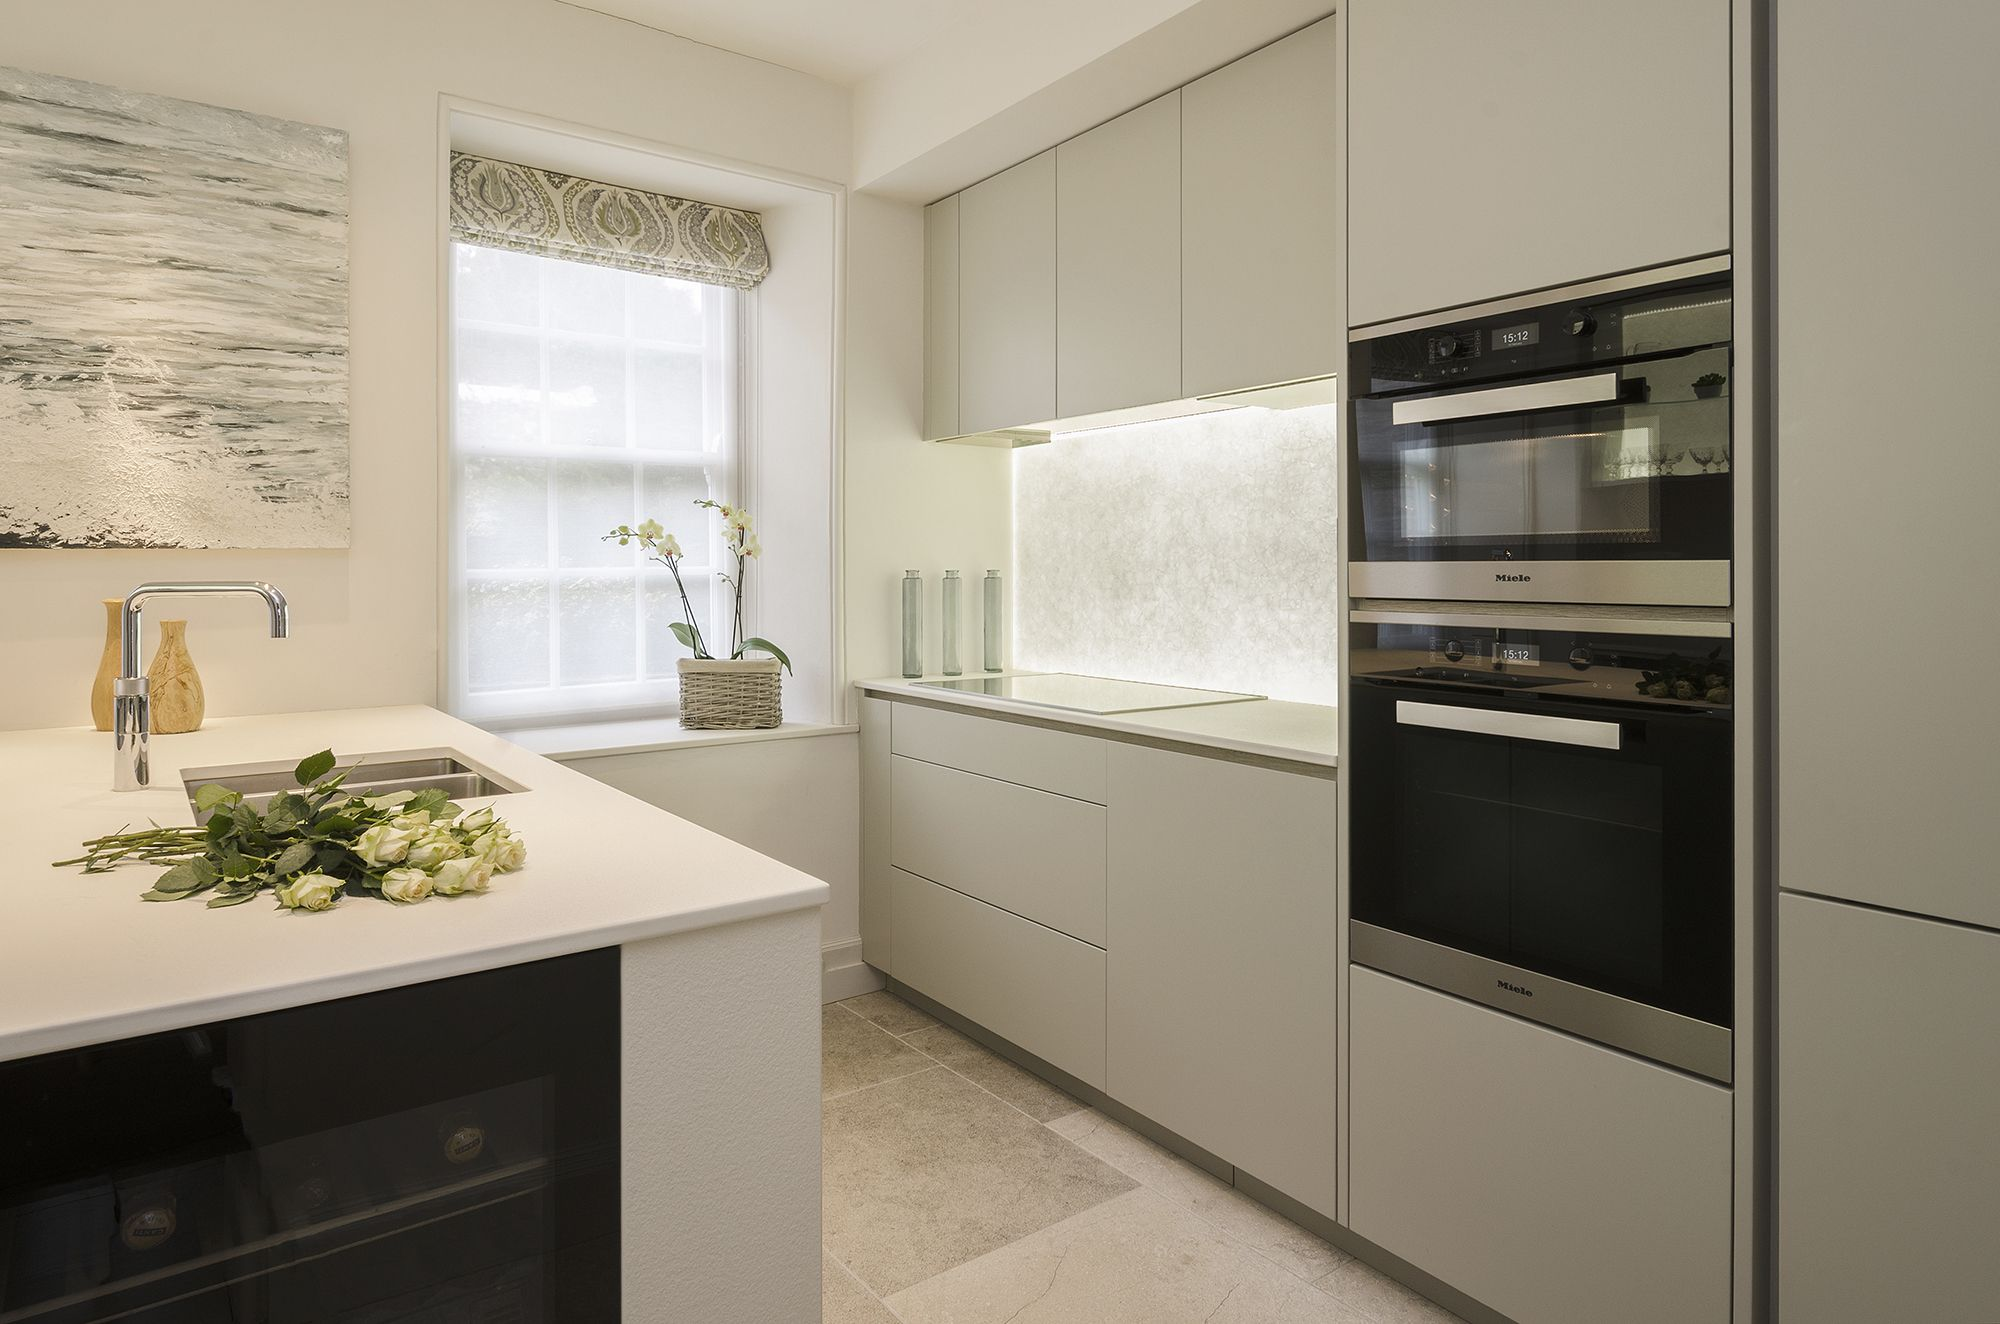 Satin Lacquered Furniture, Lapitec Worktops, Miele Appliances And Back Lit  Recycled Glass Splash